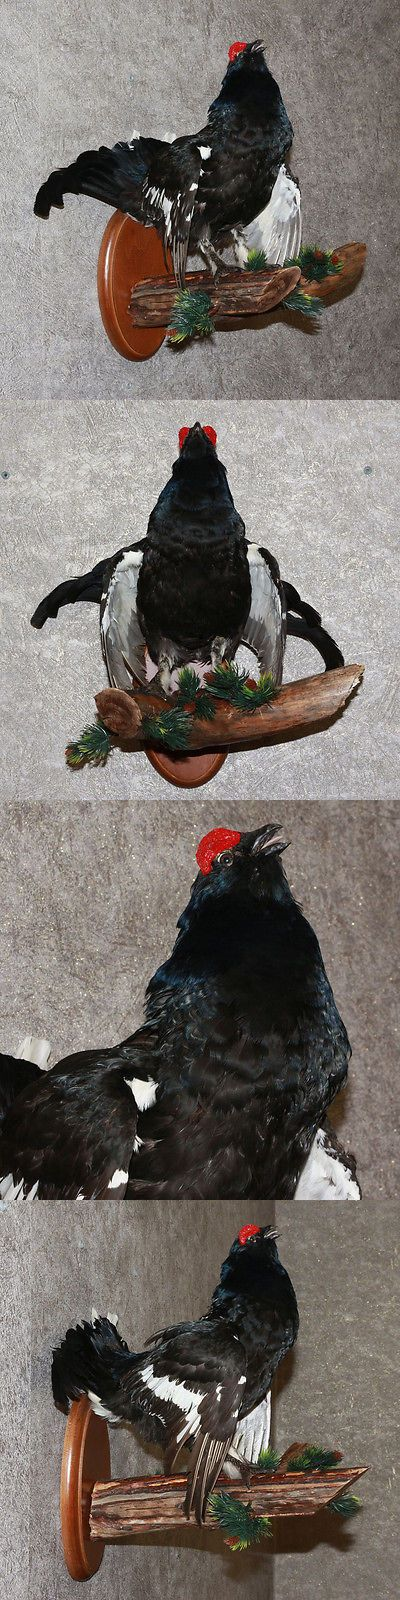 Birds 71123: Eurasian Black Grouse - Taxidermy Bird Mount, Stuffed Bird For Sale BUY IT NOW ONLY: $235.0